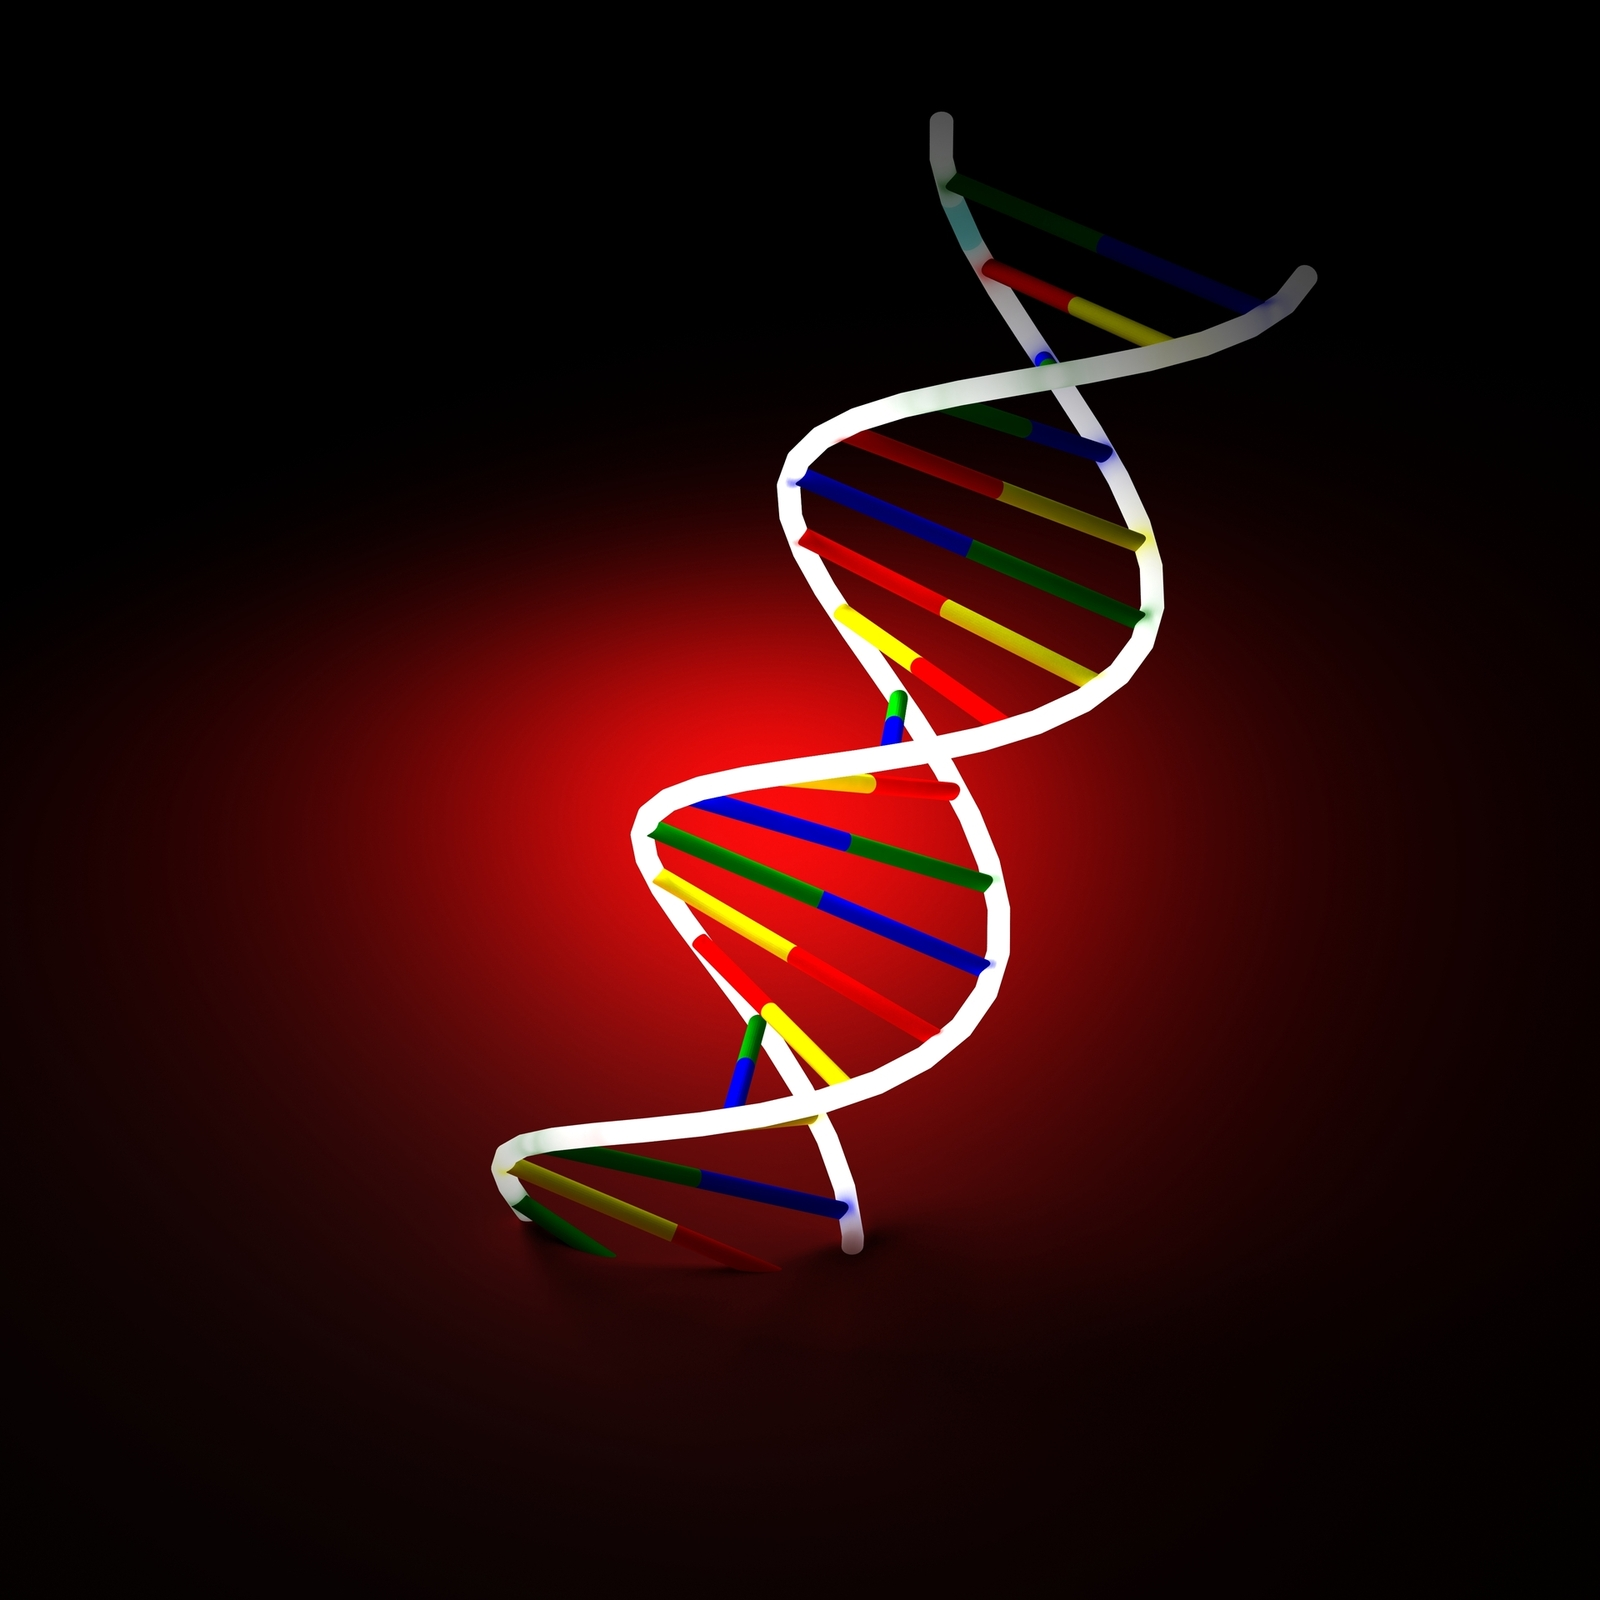 A multicolor digital recreation of a strand of DNA